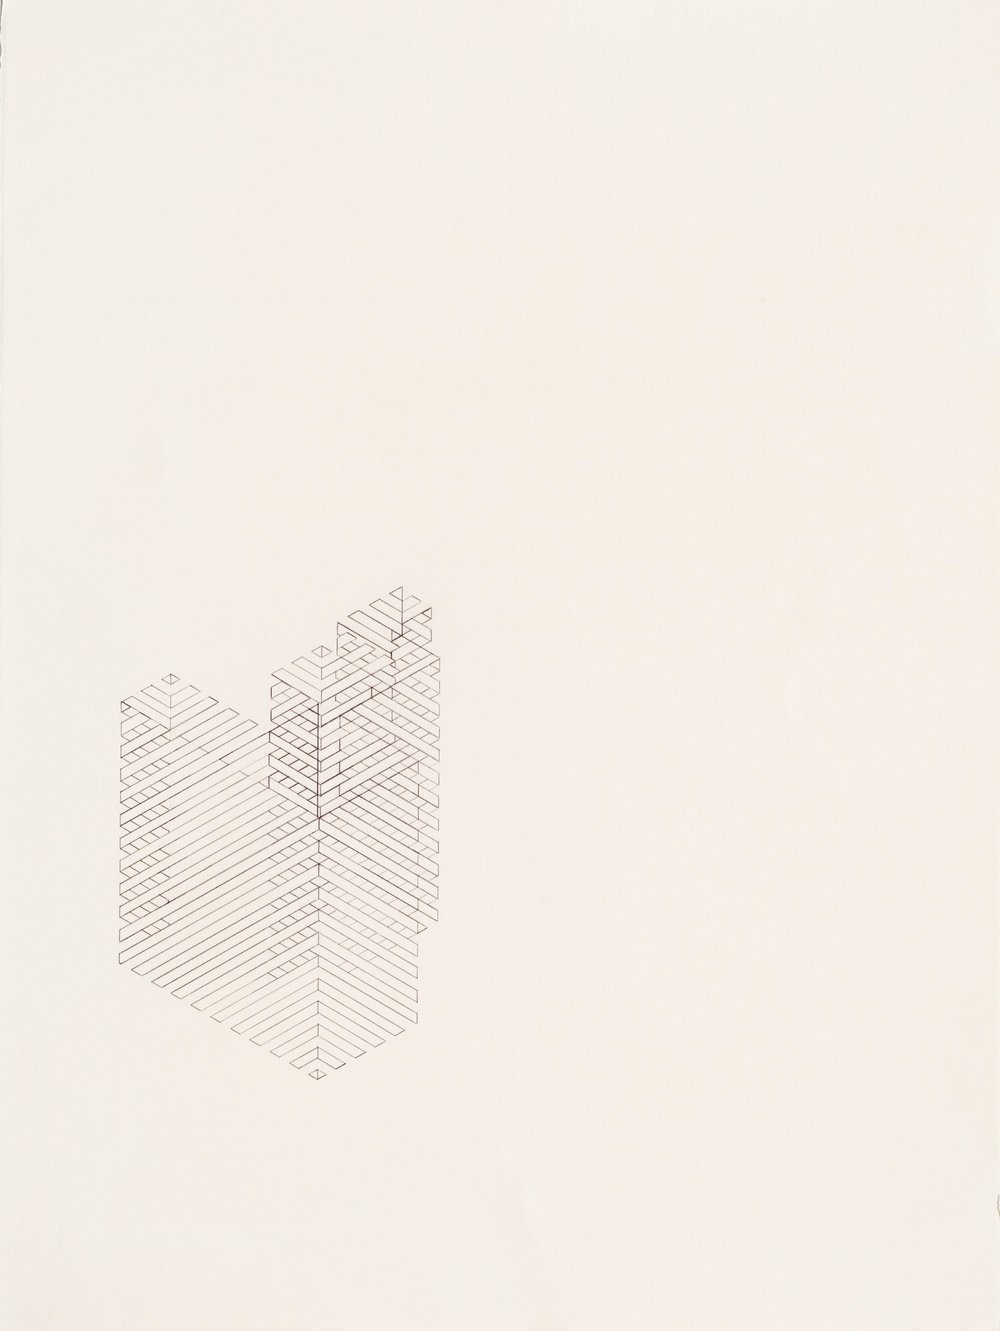 Construction 3, 2011  graphite on printmaking paper  30 x 22 inches